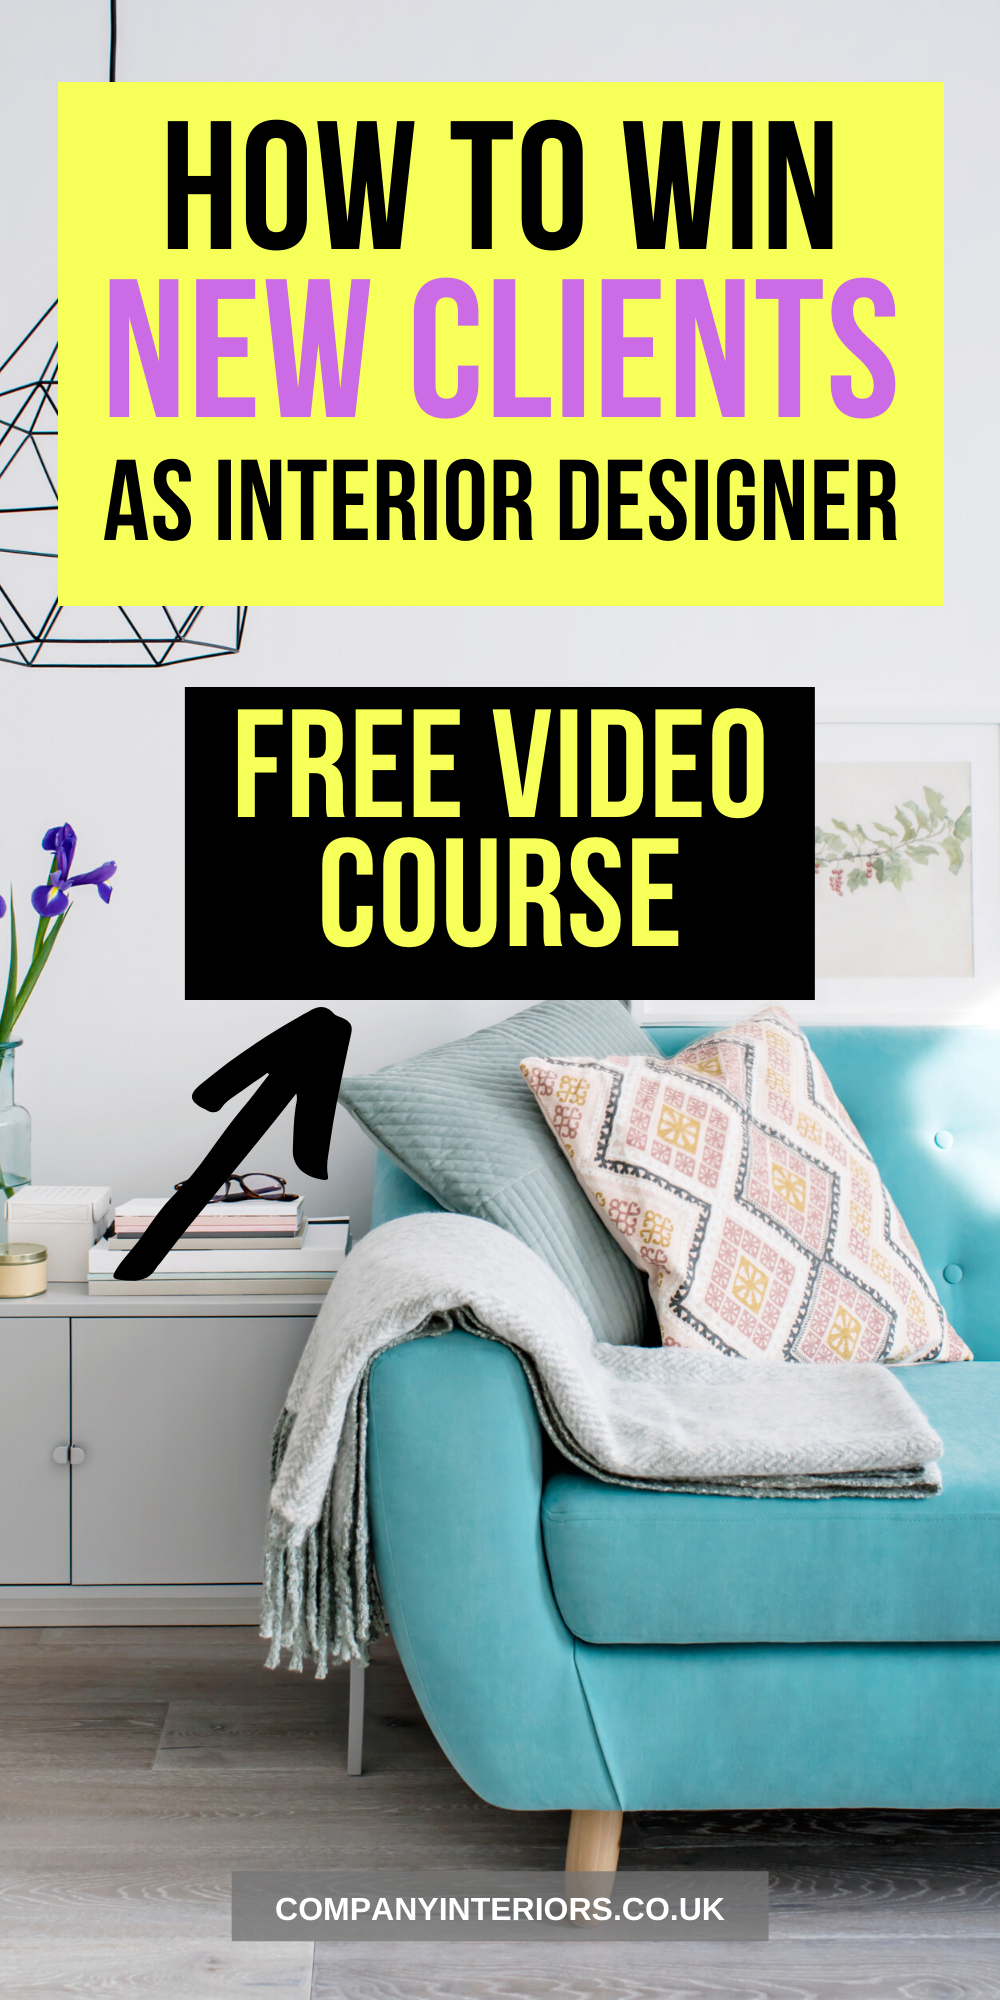 Free Online Course For Interior Designers How To Win The Right New Clients And Repel The Wrong Ones Nick Clarke From Com Interior Design Business Workplace Design Online Courses